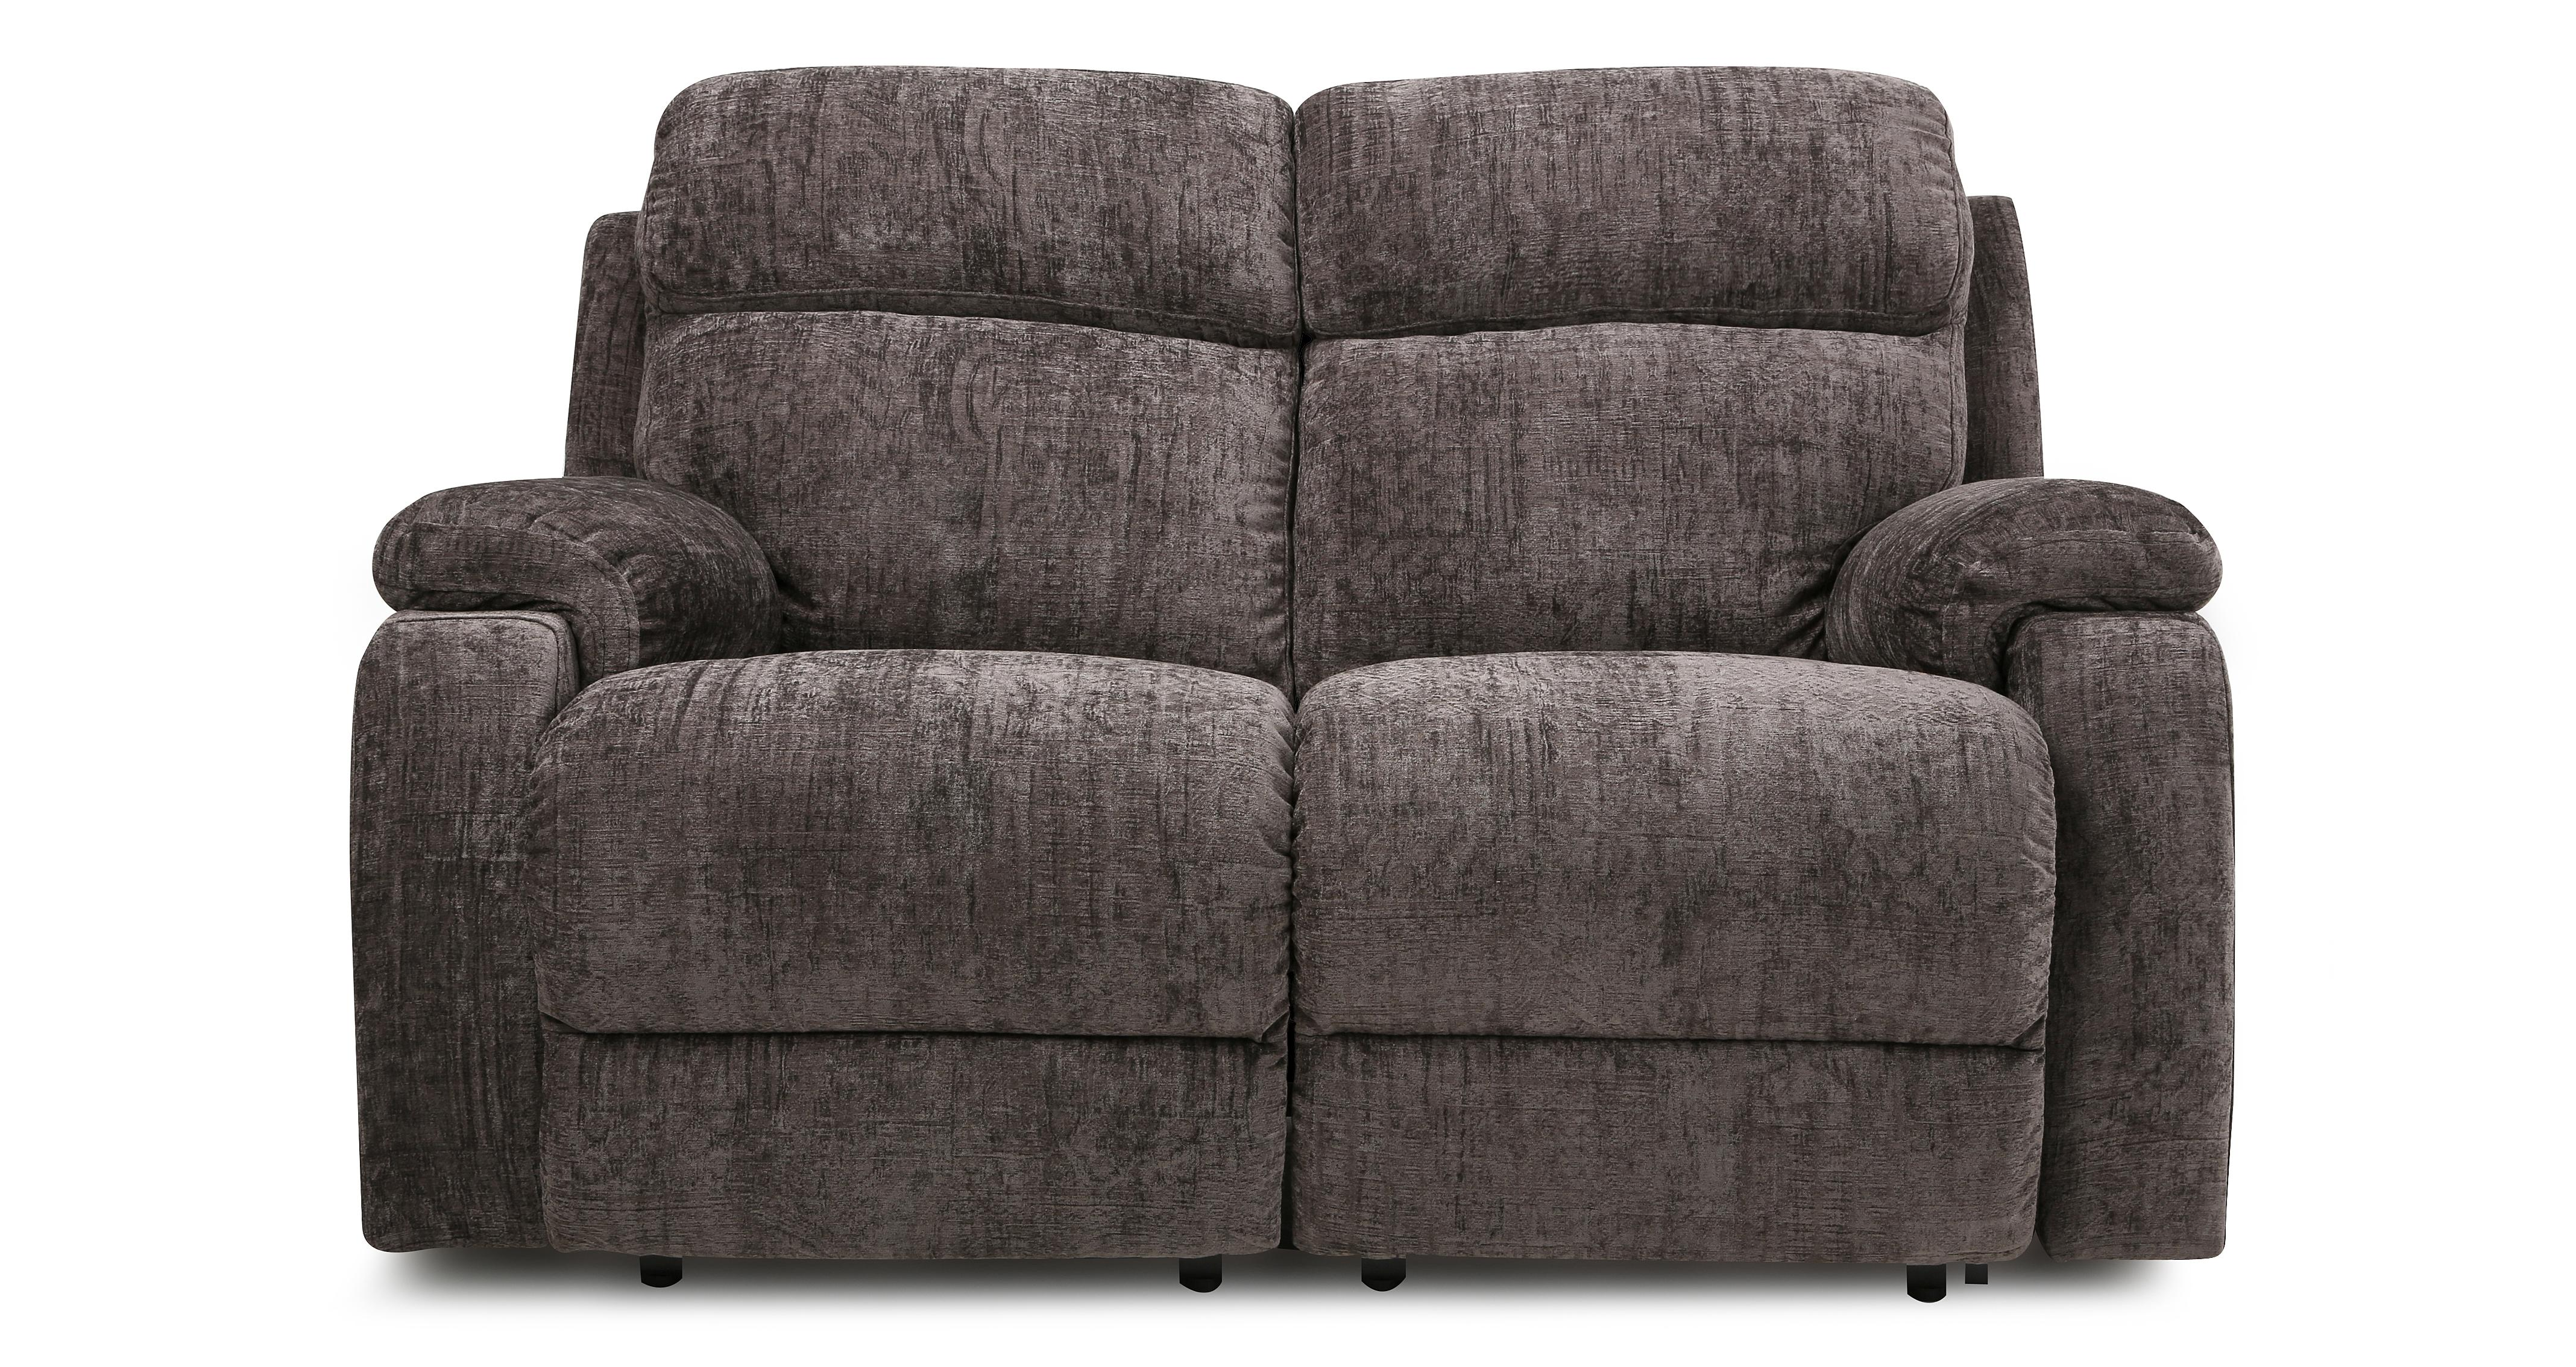 dfs recliner sofa bed belham living parkville metal sectional patio dining set barford settee nutmeg fabric couch 2 seater manual